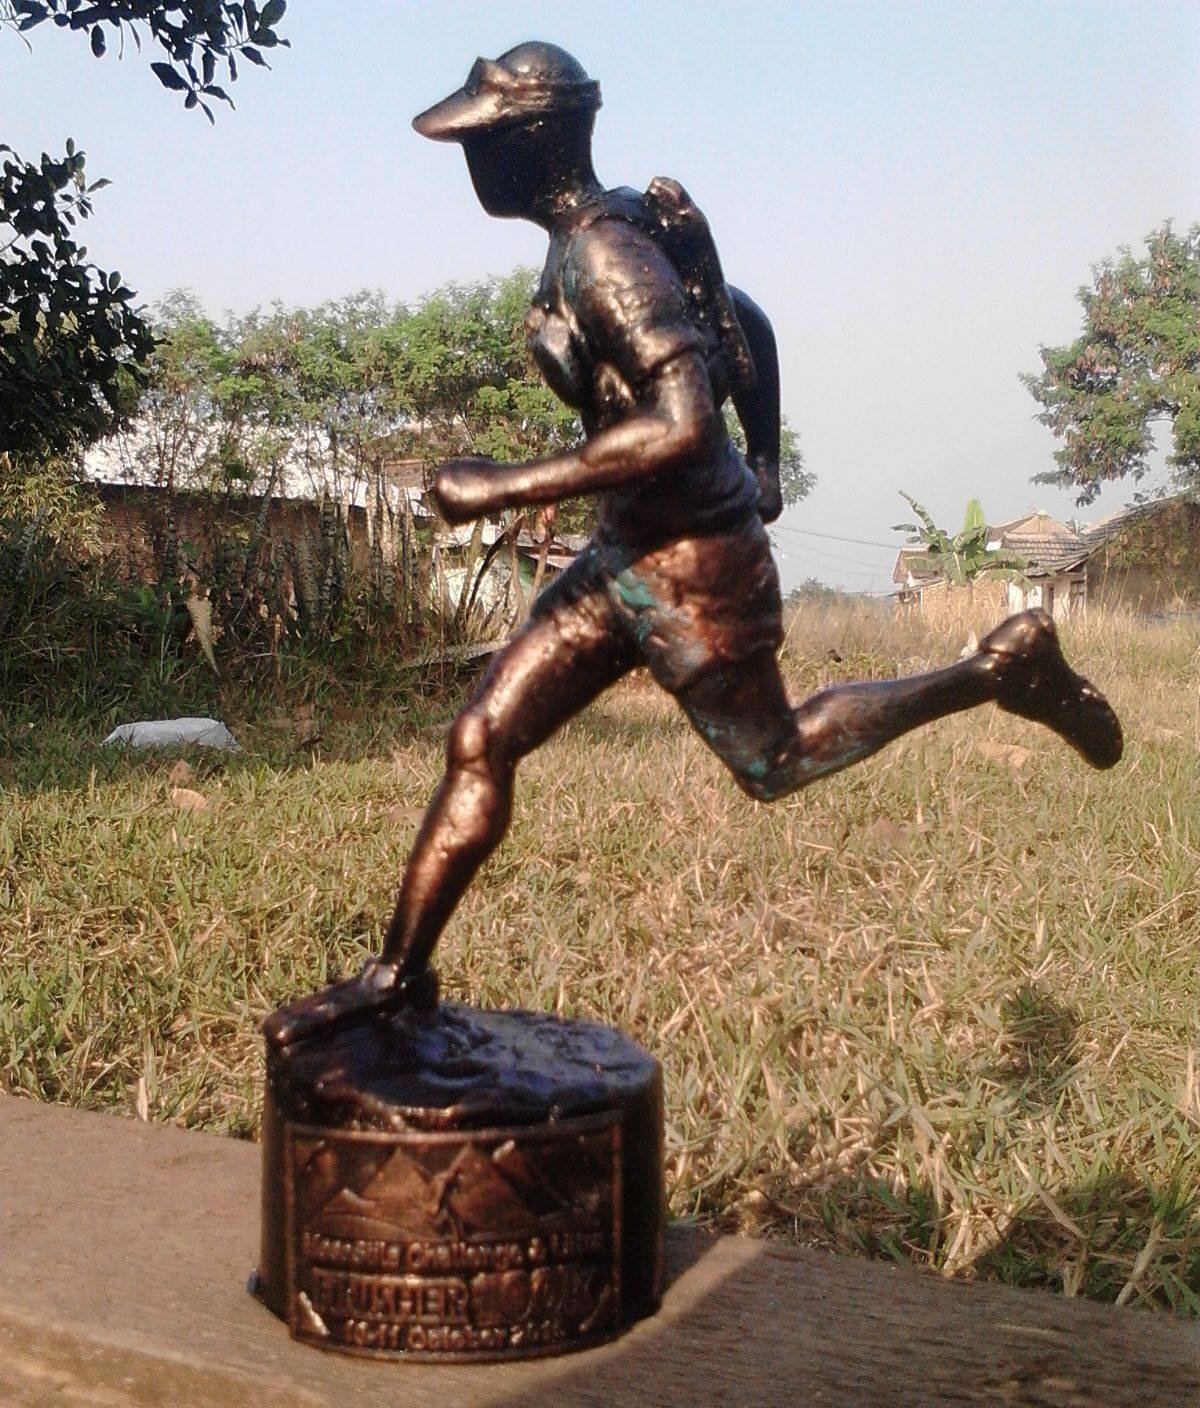 The Mesastila Trophy for this weekend's champions in Central Java.